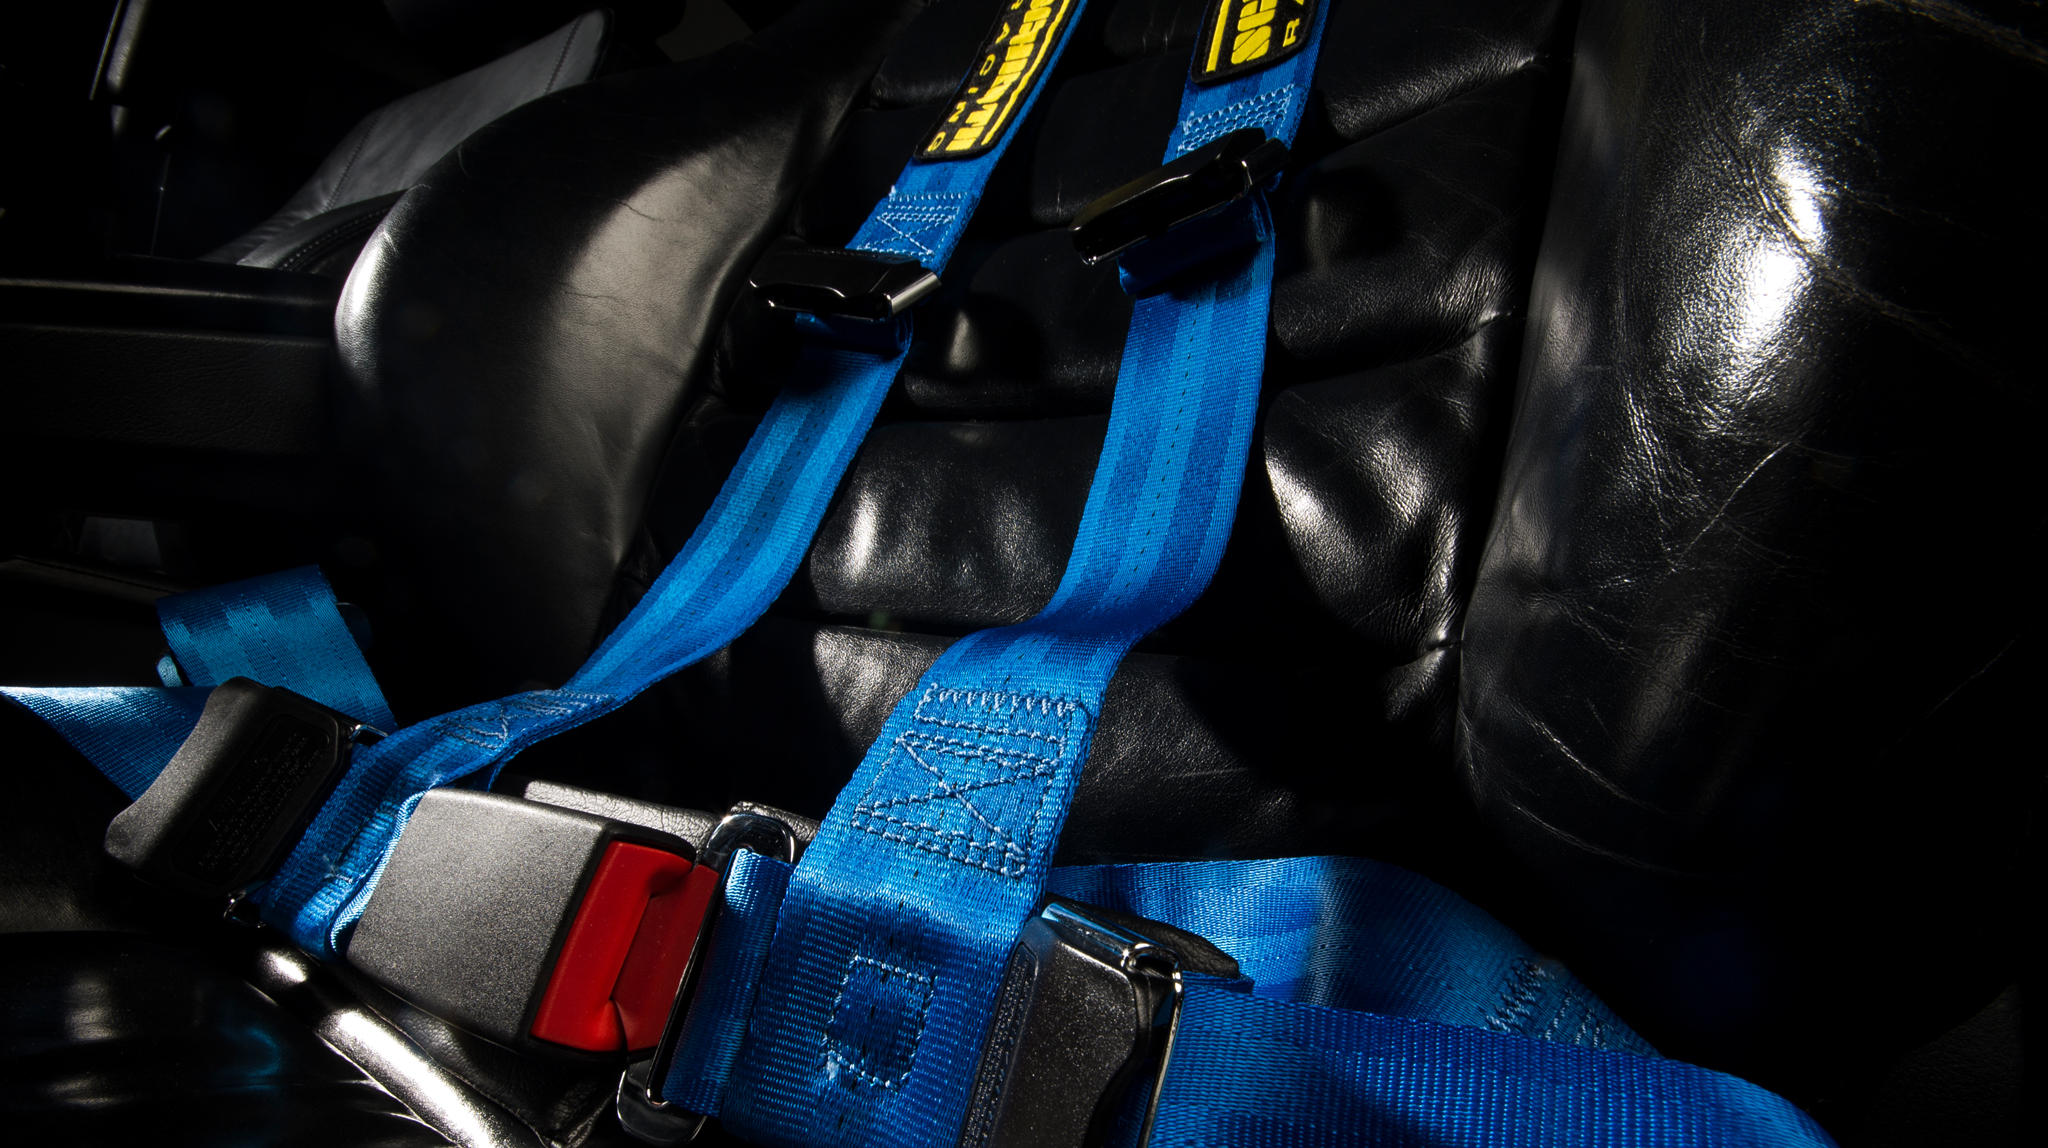 BMW Seat Belts and Racing Harnesses | Turner Motorsport